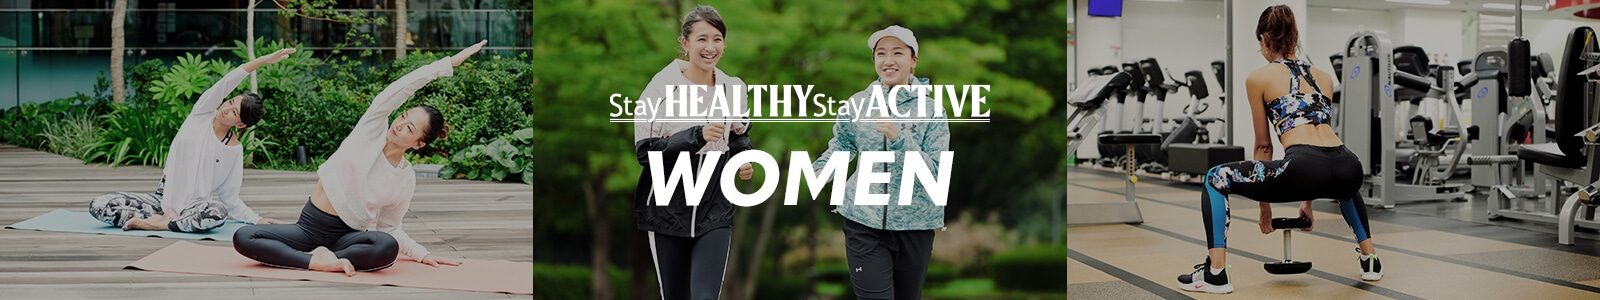 STAY HEALTHY STAY ACTIVE WOMEN